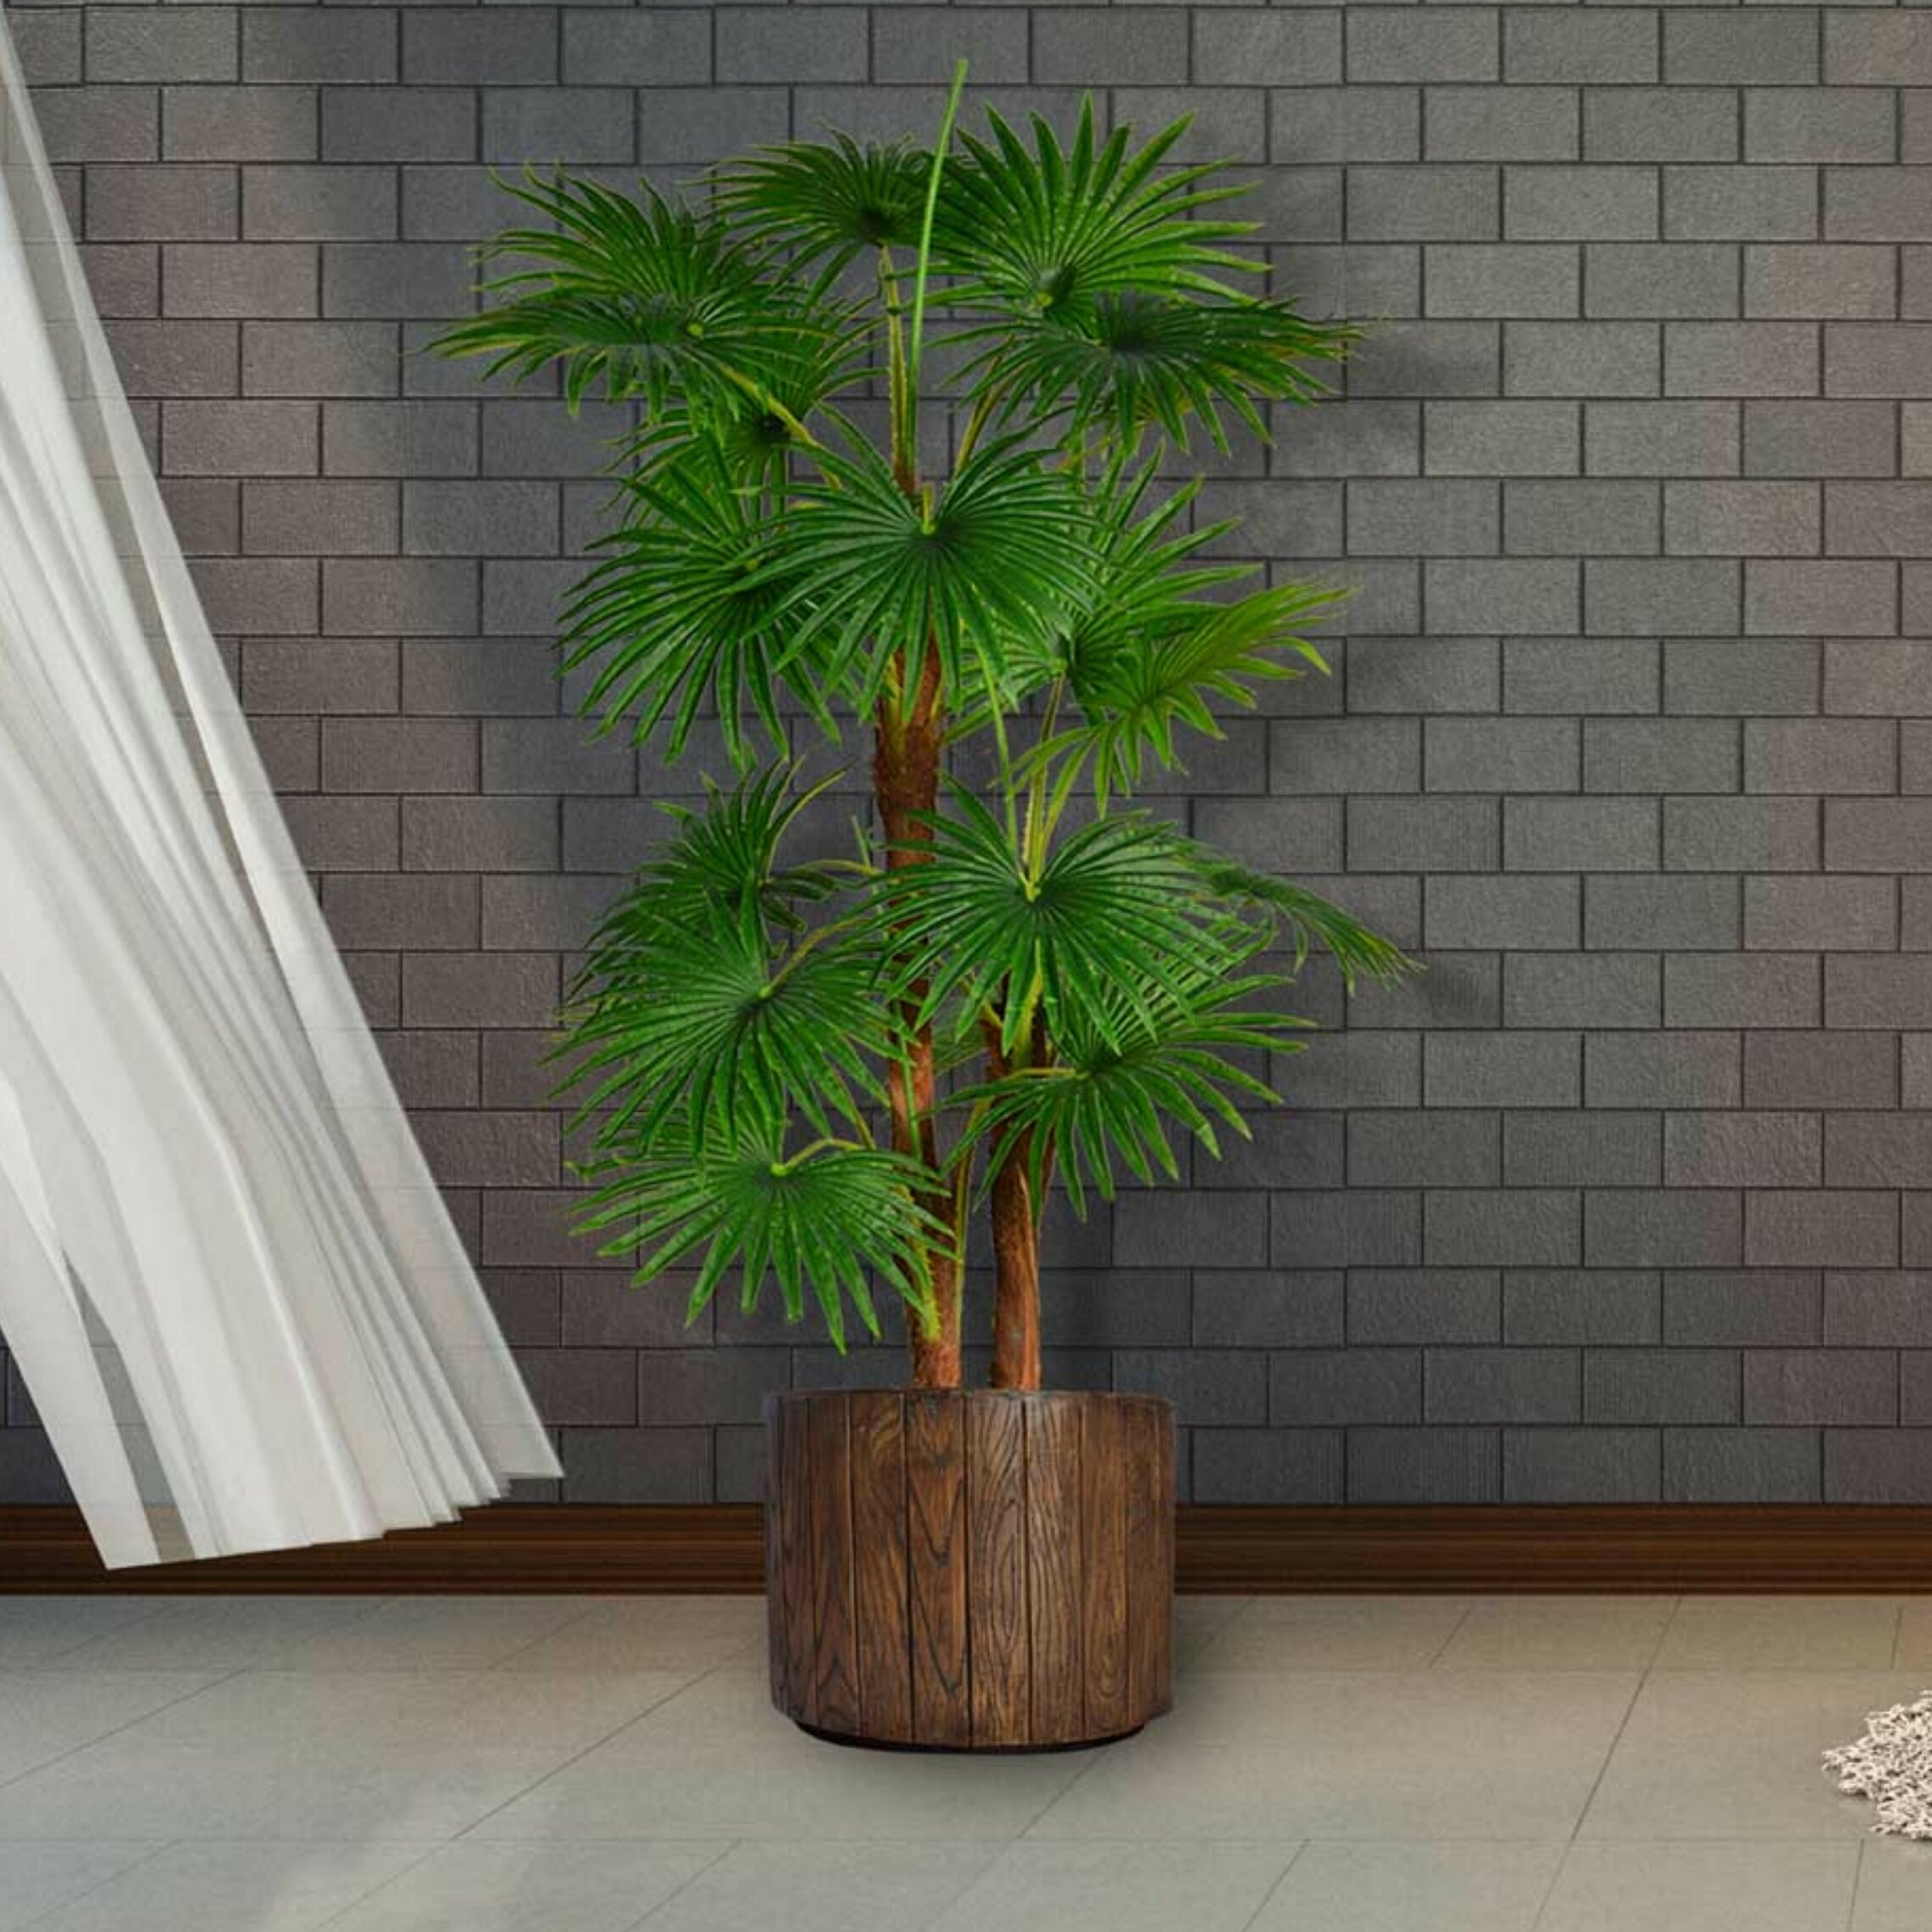 Loon Peak Artificial Indoor Outdoor Décor Floor Palm Tree In Planter Wayfair